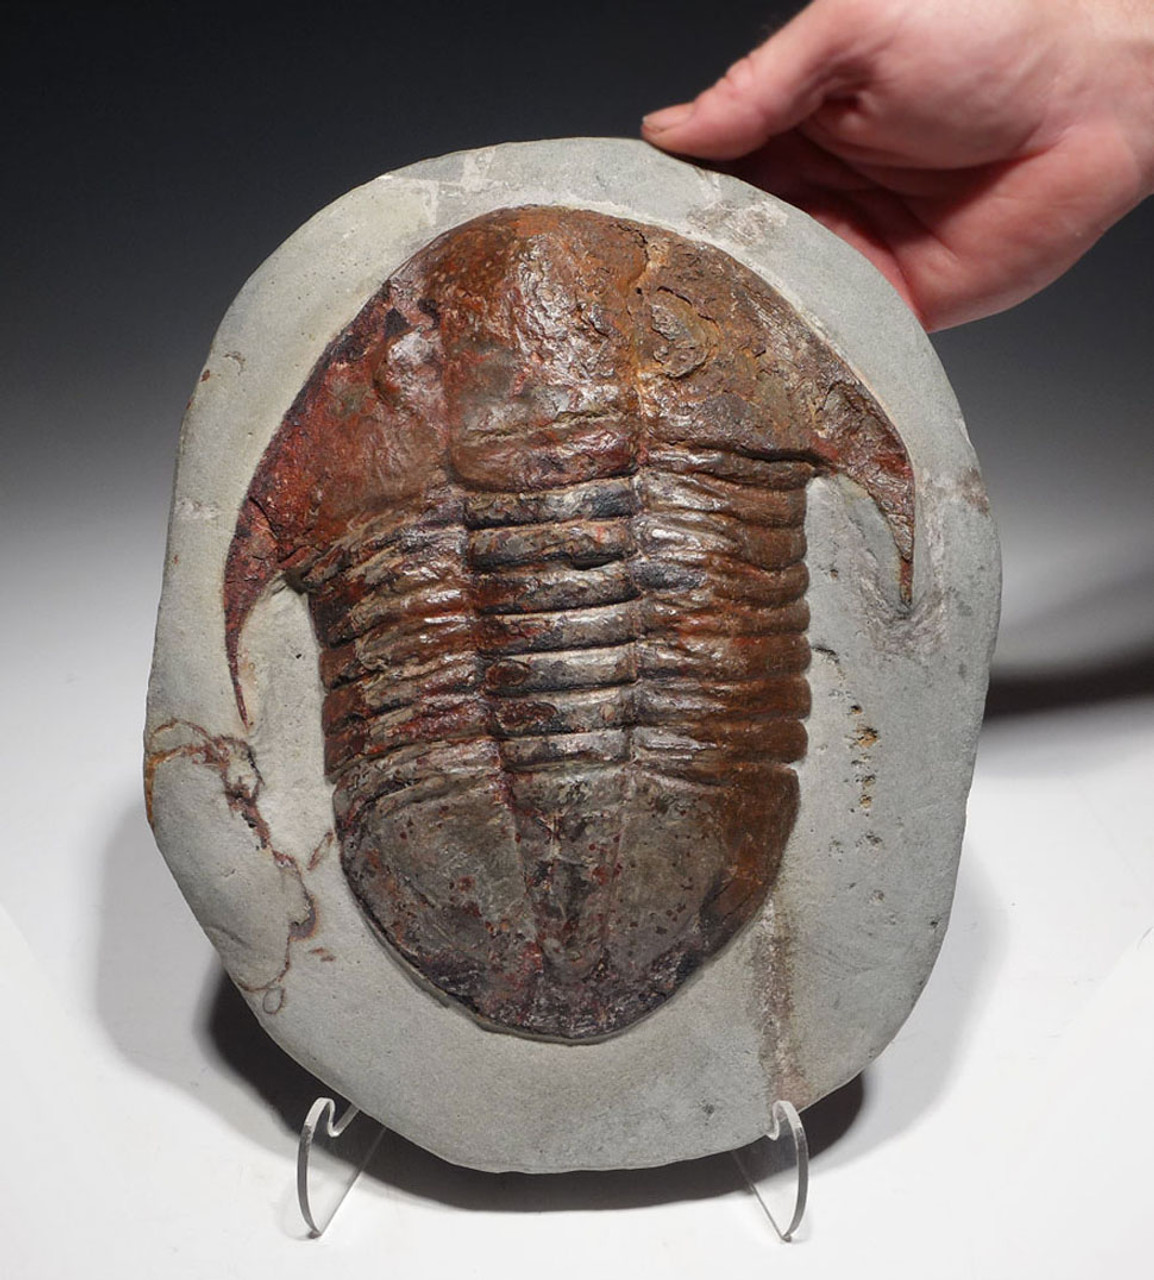 TRILOBITE FOR SALE